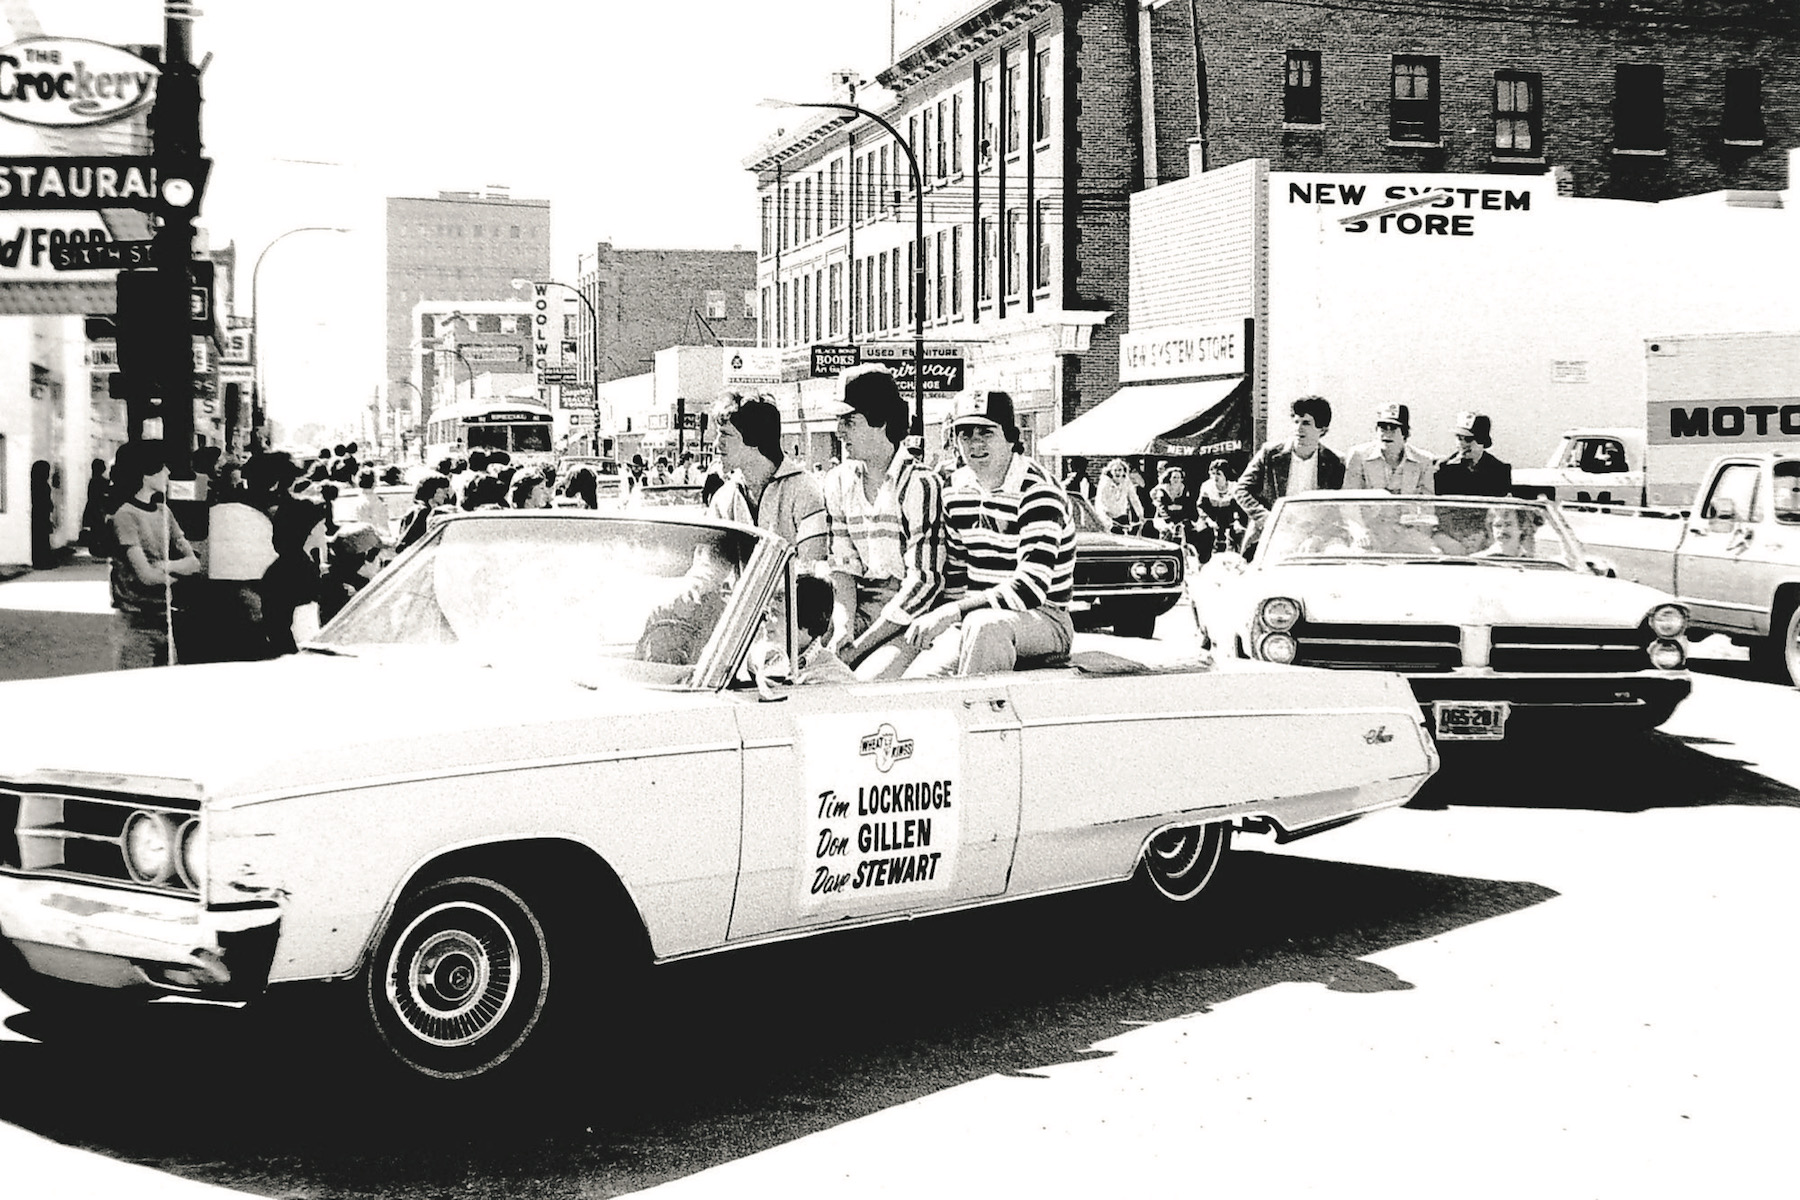 Dave Stewart, left, rides in a convertible with teammates Tim Lockridge, right, and Don Gillen, centre, during a parade held for the Wheat Kings in the spring of 1979.